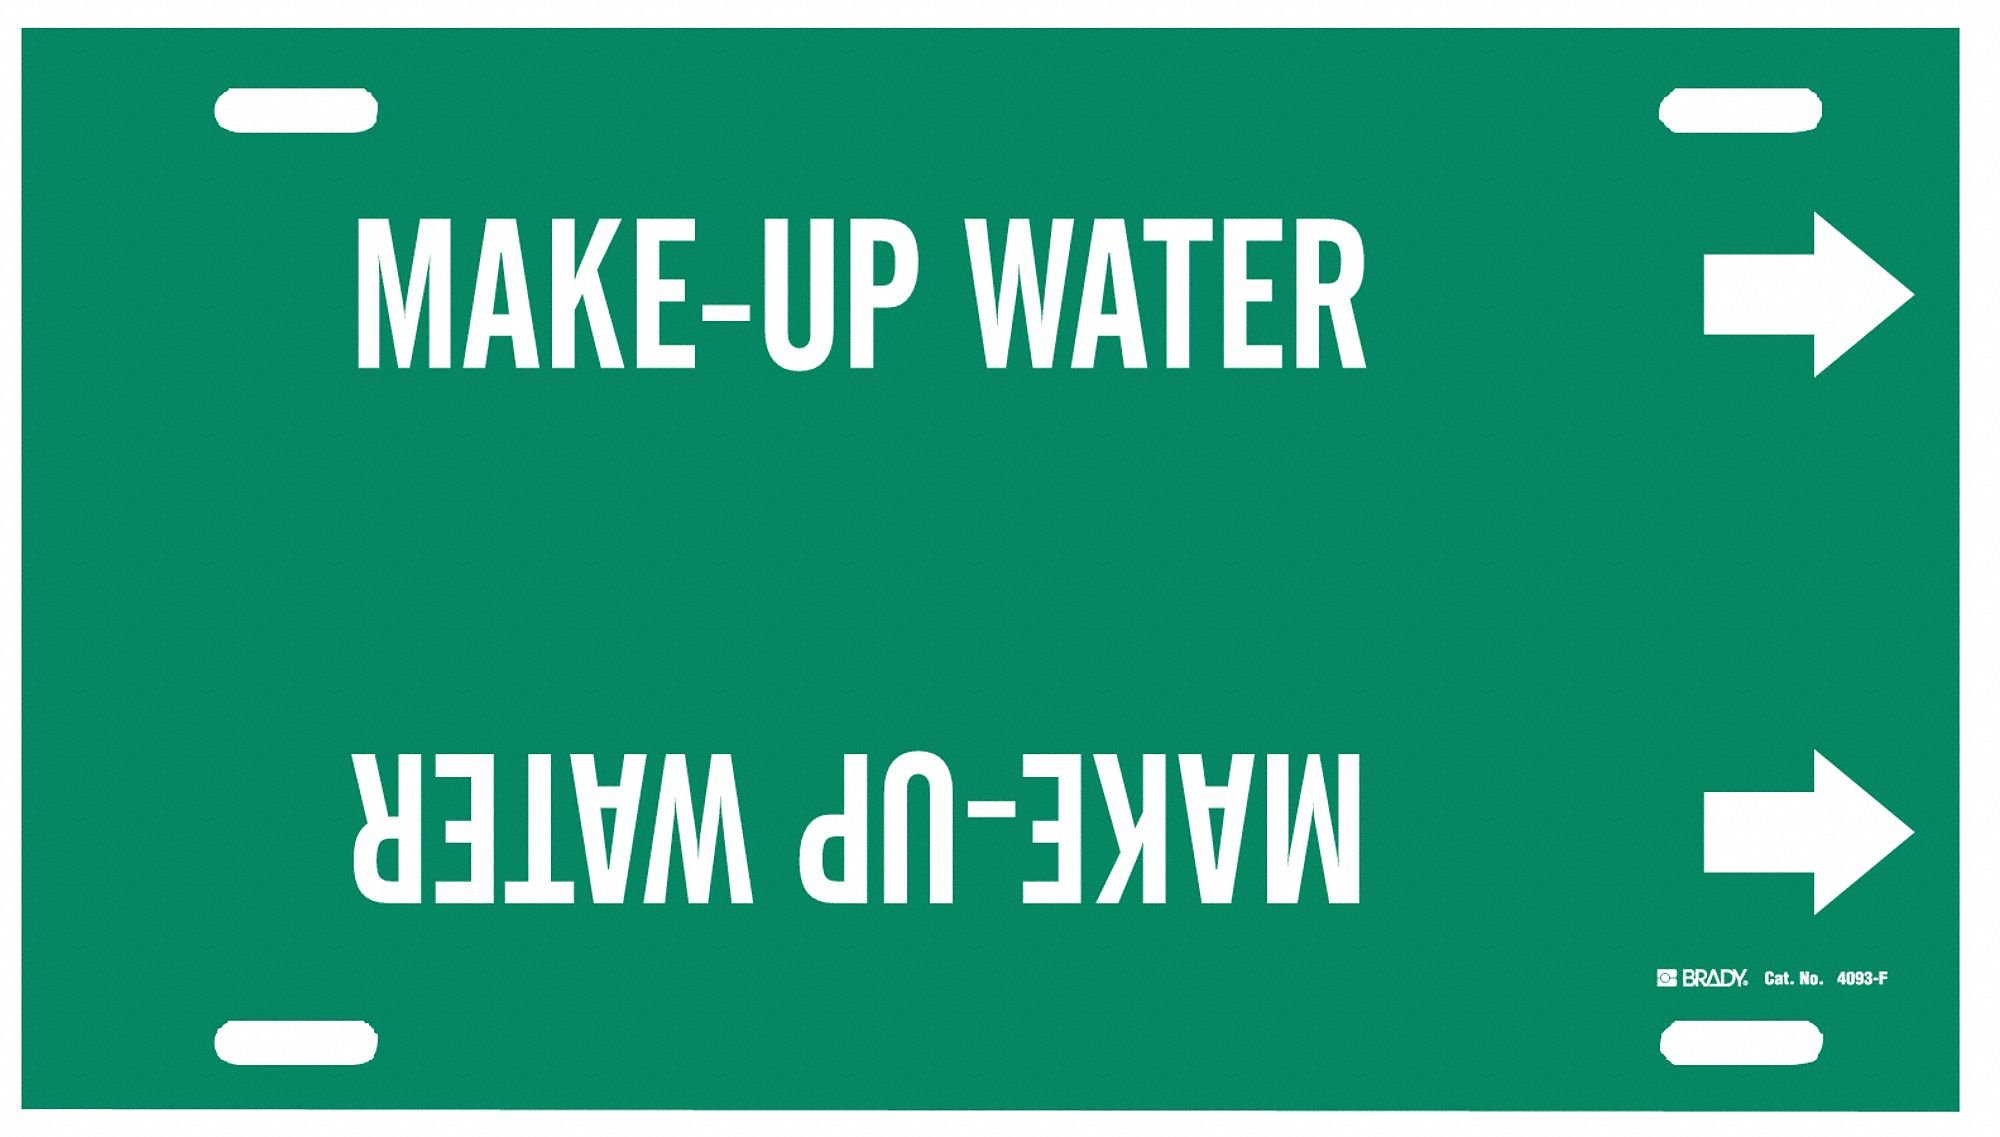 Pipe Marker,Make Up Water,Gn,6to7-7/8 In